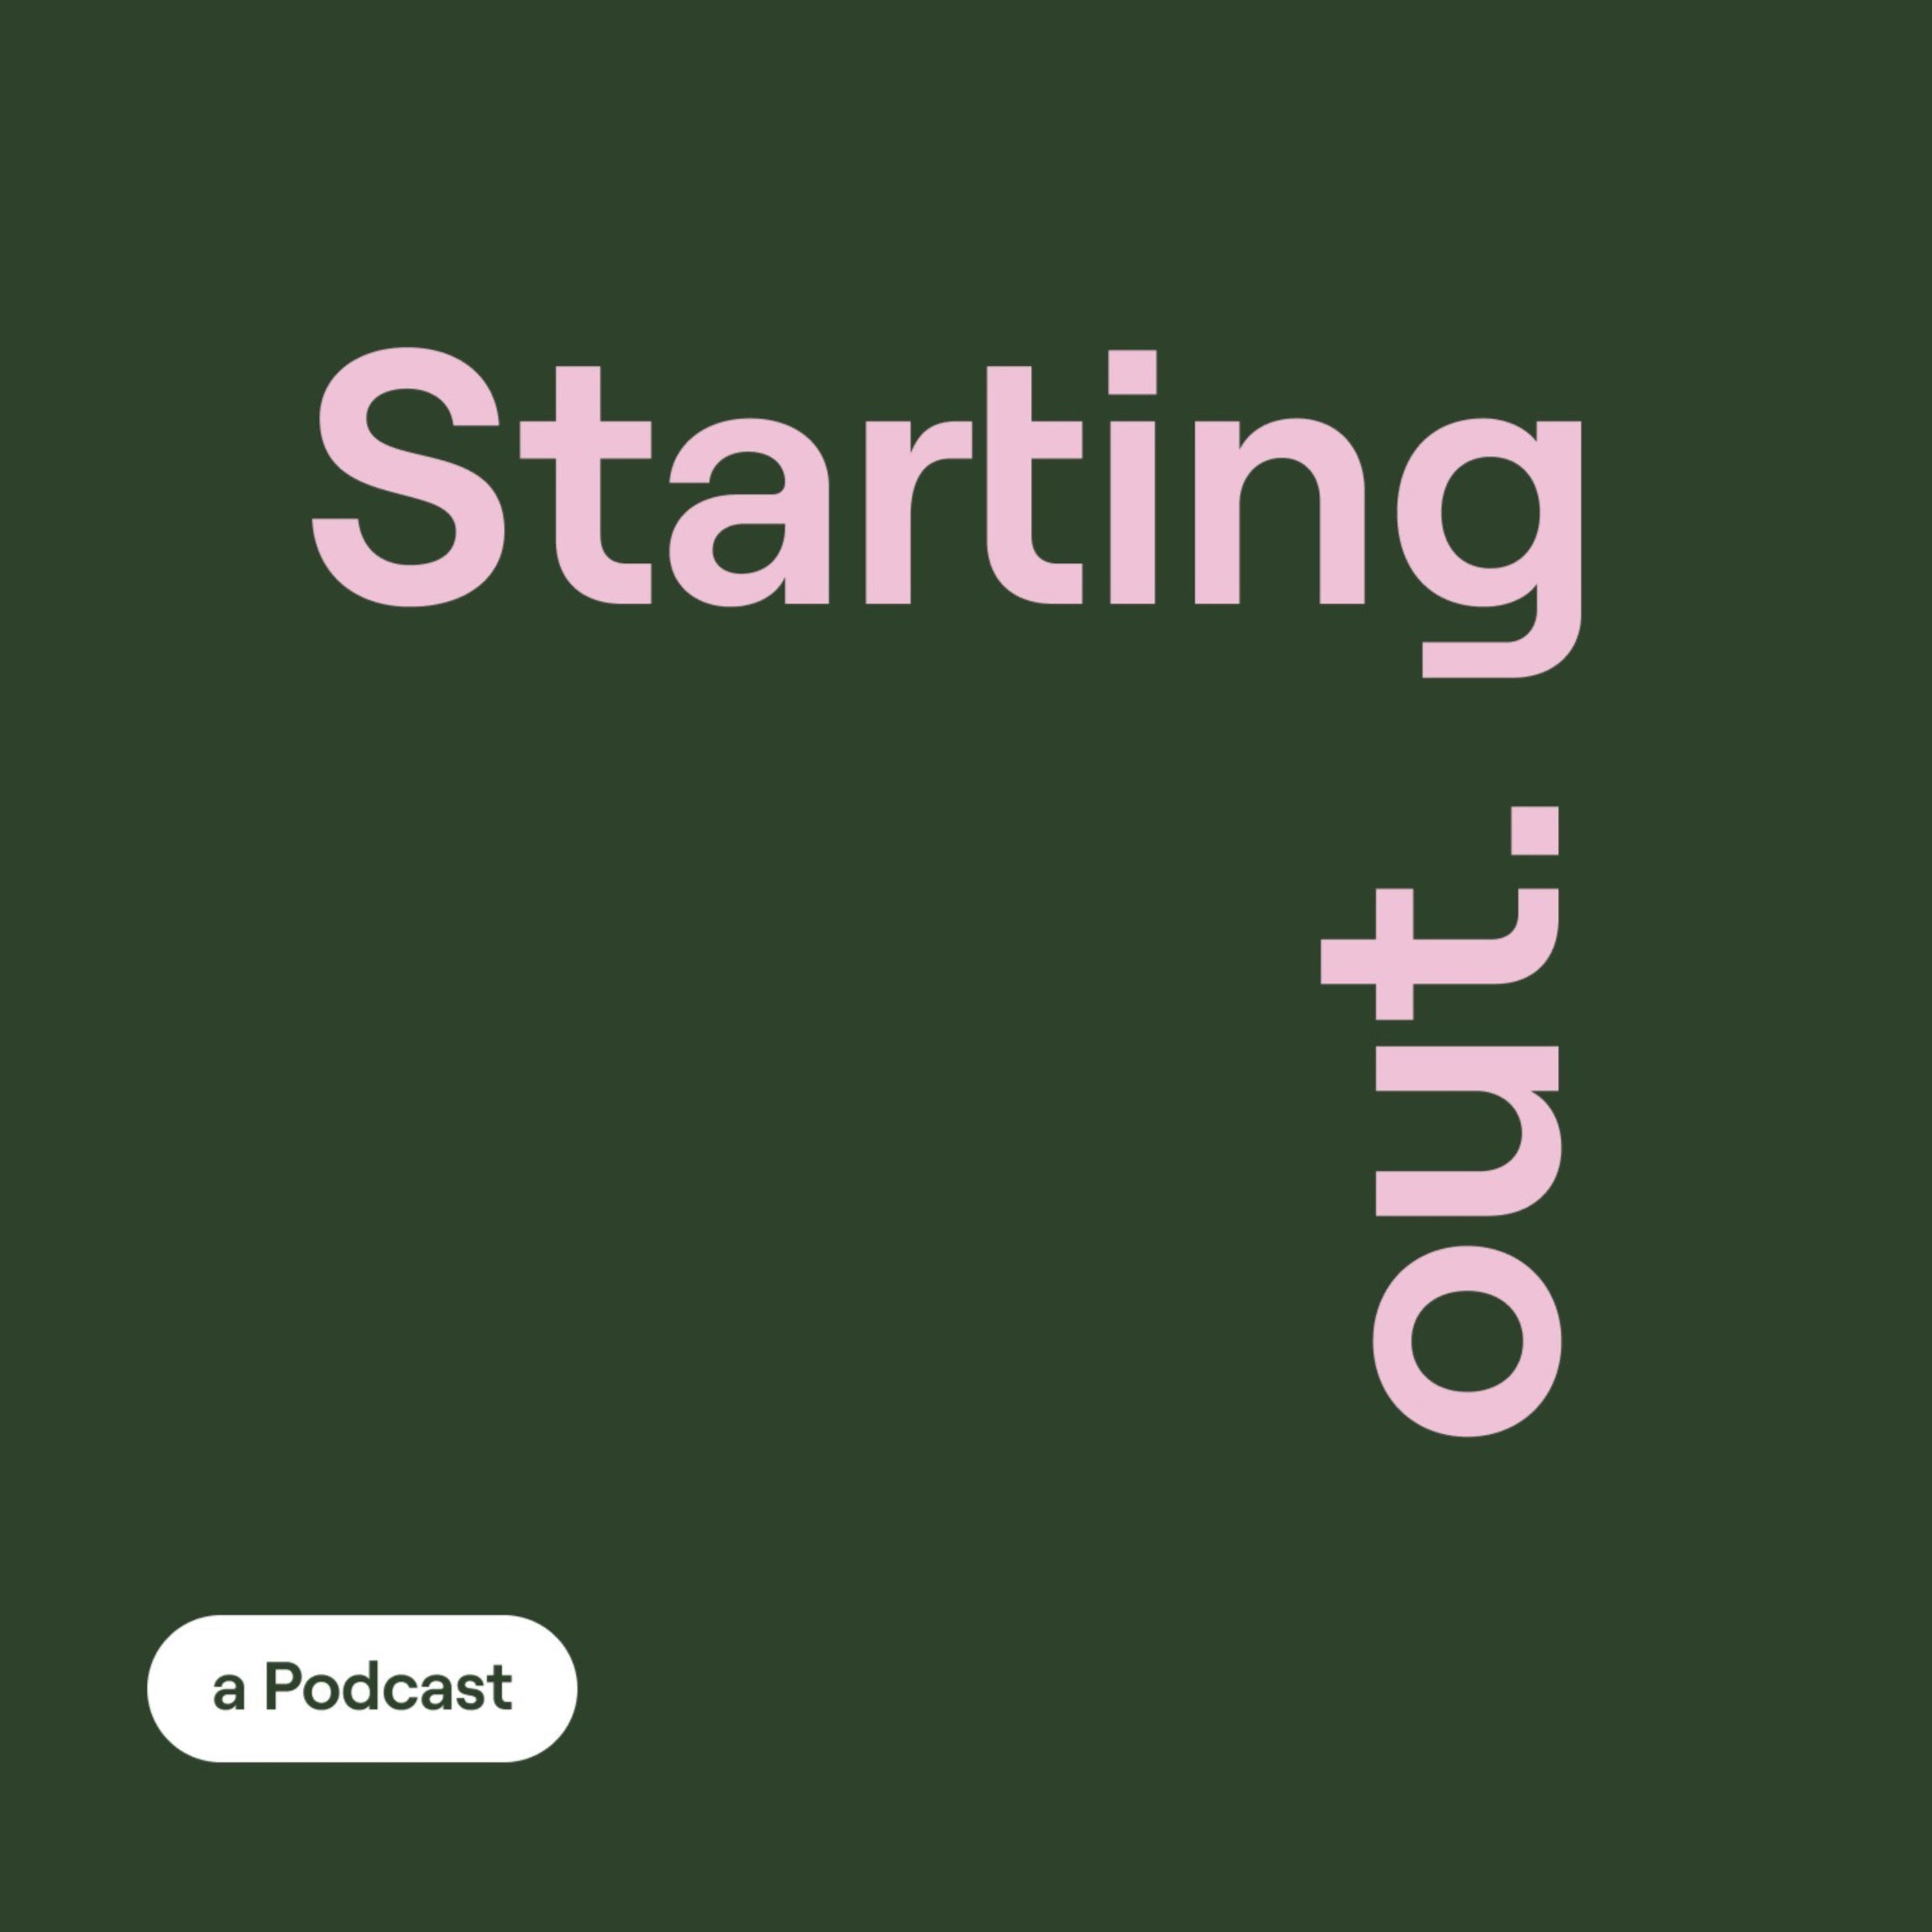 Starting Out Podcast